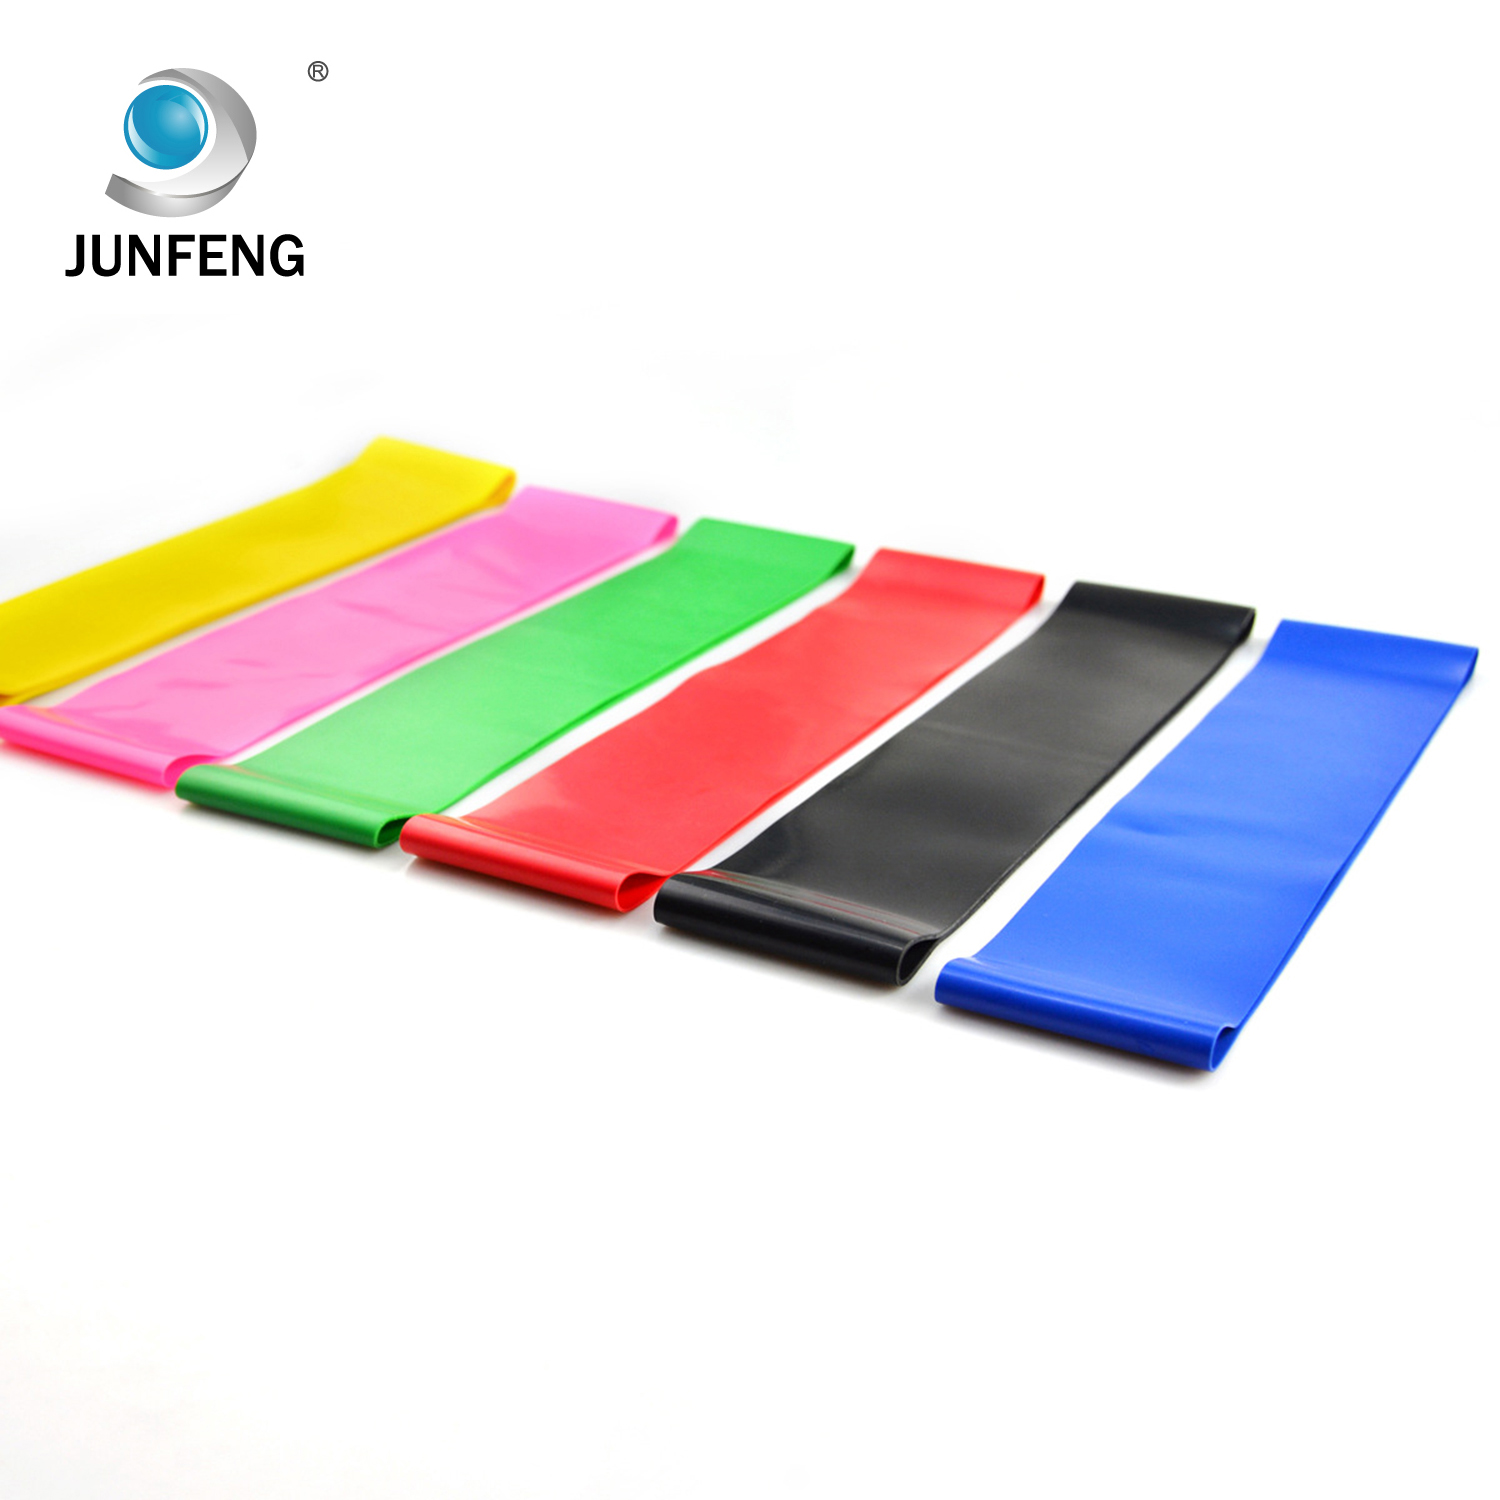 High quality elastic resistance bands and fabric resistance band